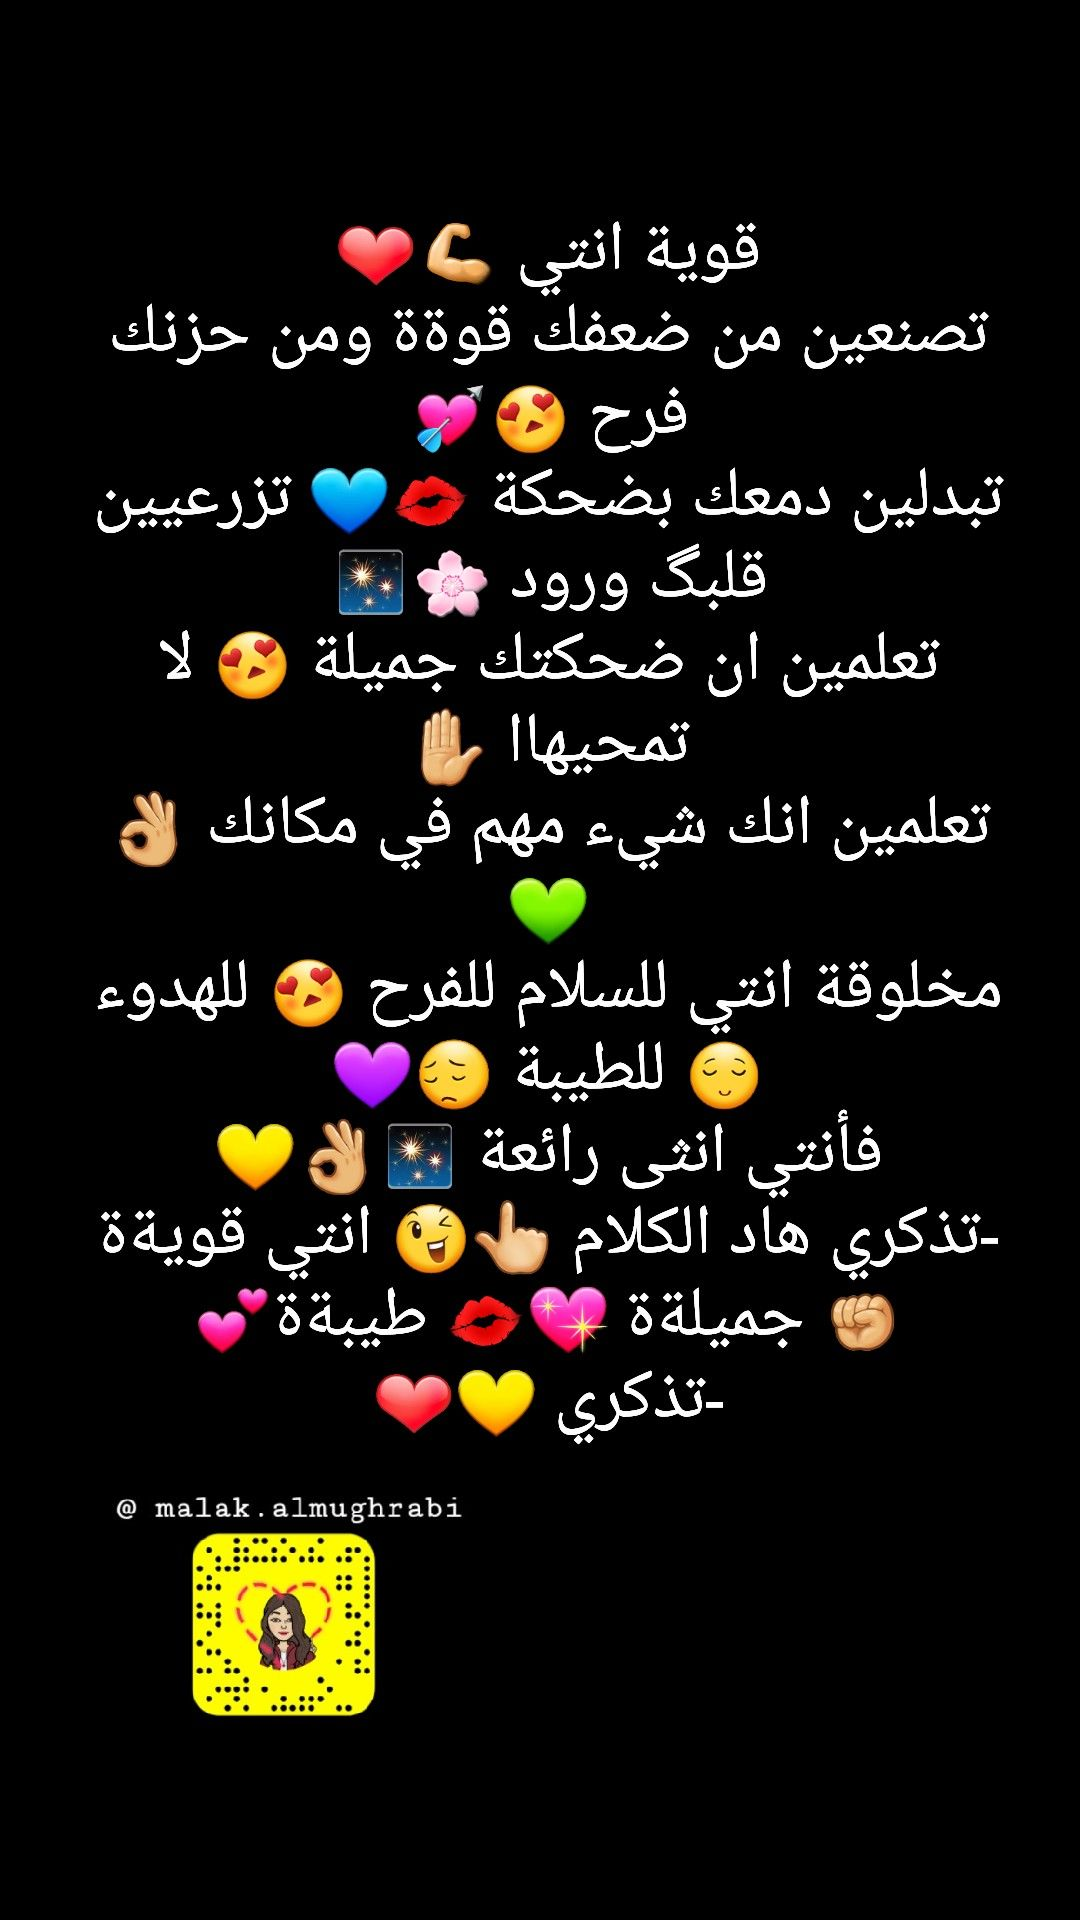 Pin By Uzgun Kralice On Zzzz Wisdom Quotes Life Funny Arabic Quotes Cute Love Quotes